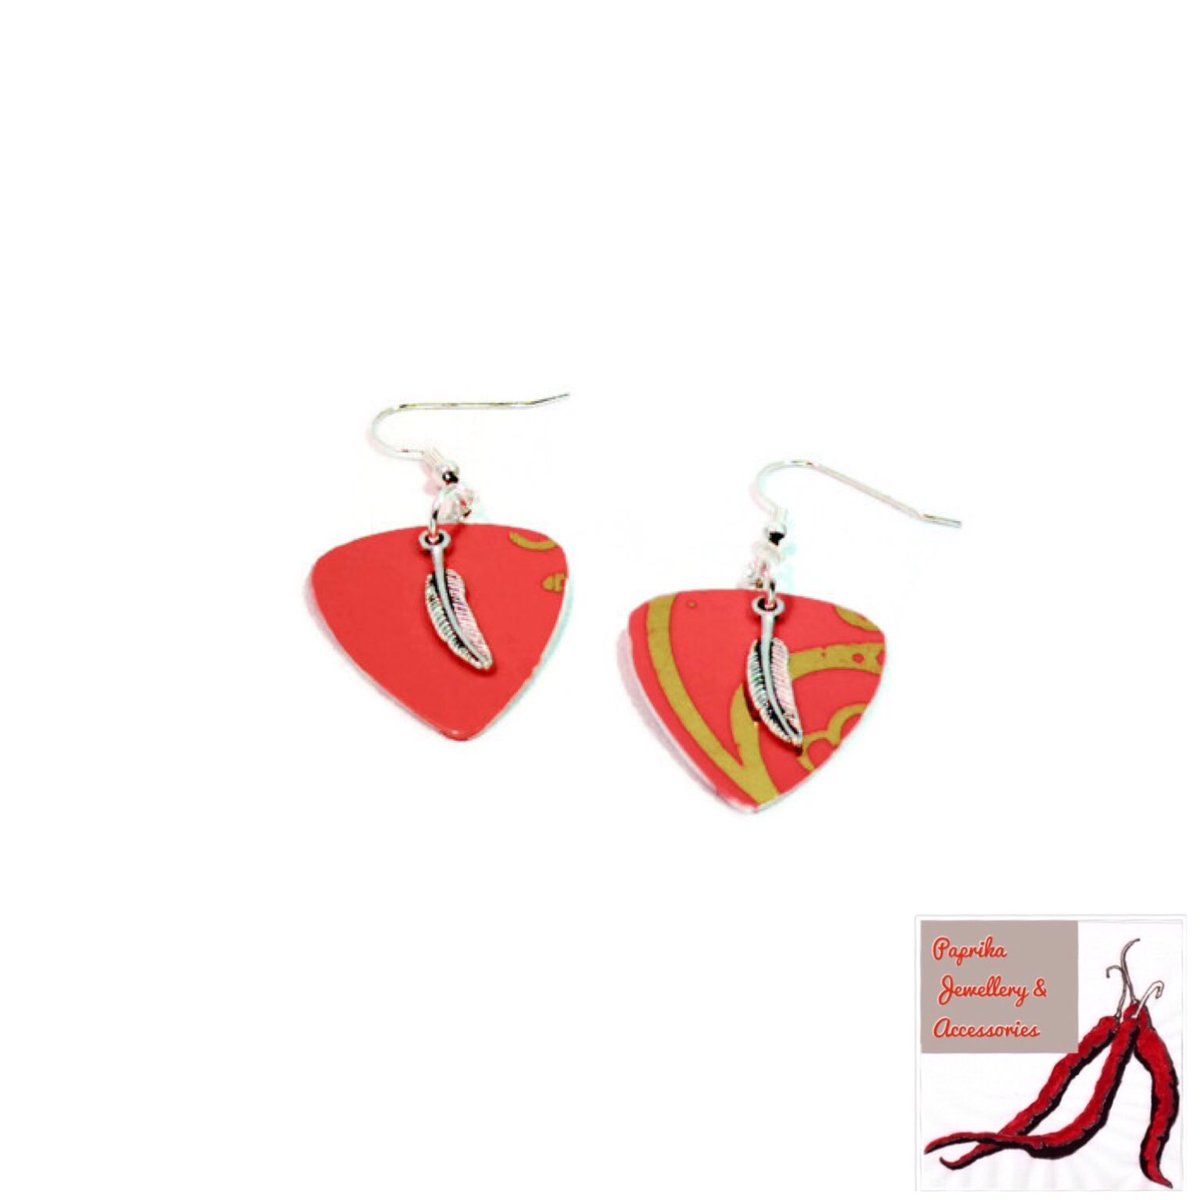 @WhatsNewRae #Womaninbiz  Do you like to stand out from the crowd?  https://www. consciouscrafties.com/handmade-gifts /recycled-plectrum-earrings-feather-charm &nbsp; …  @ConsciousCrafty #wnukrt #bohojewelry #upcycled <br>http://pic.twitter.com/WDG80WHIhC